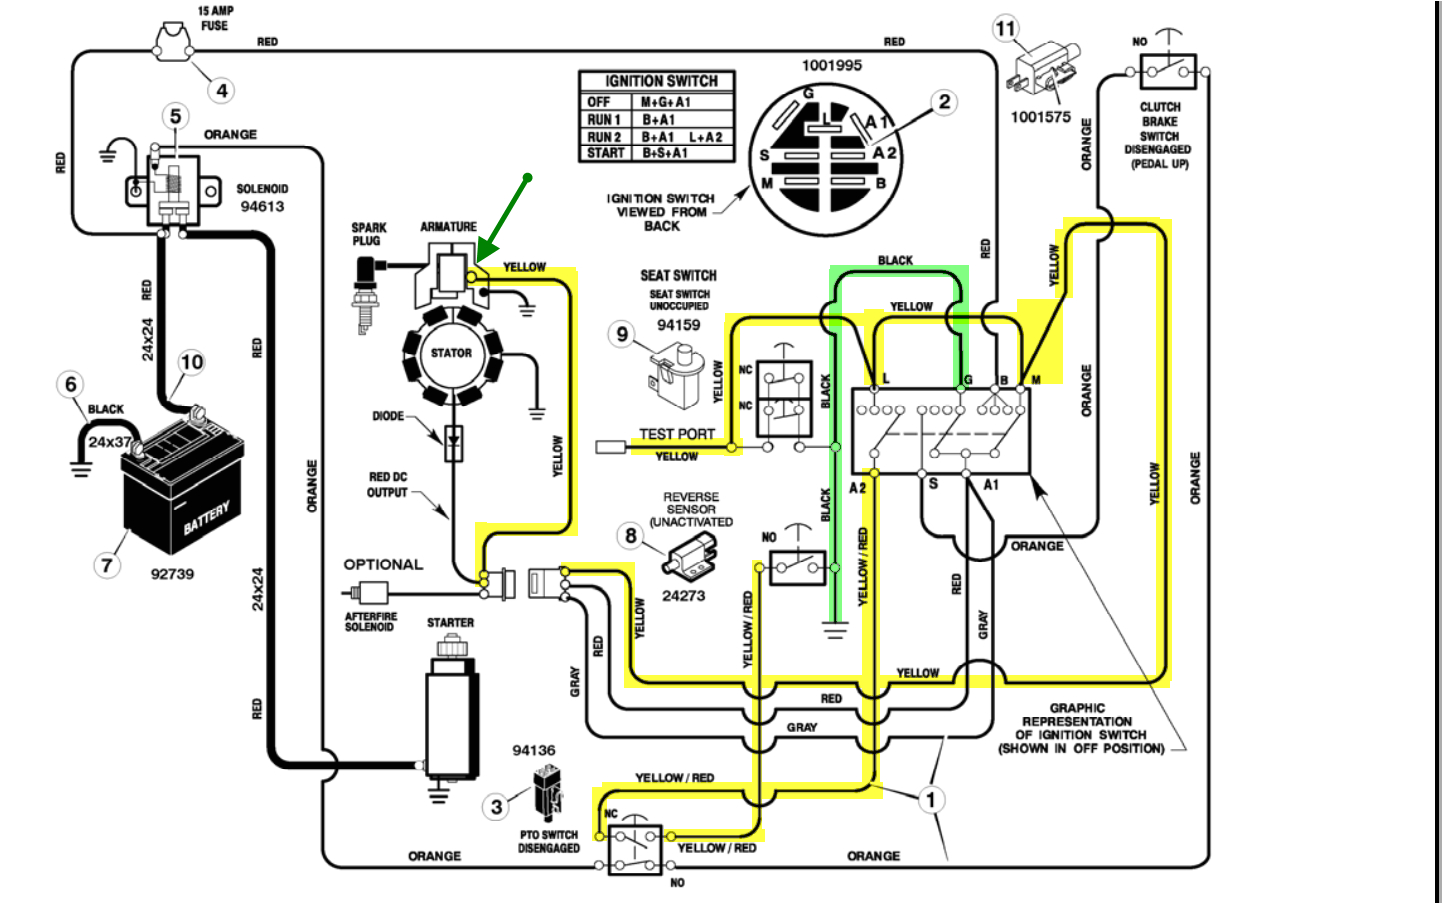 Briggs and Stratton Wiring Diagram 20 Hp 6 Pin Wiring Diagrams Briggs Wiring Diagram Show